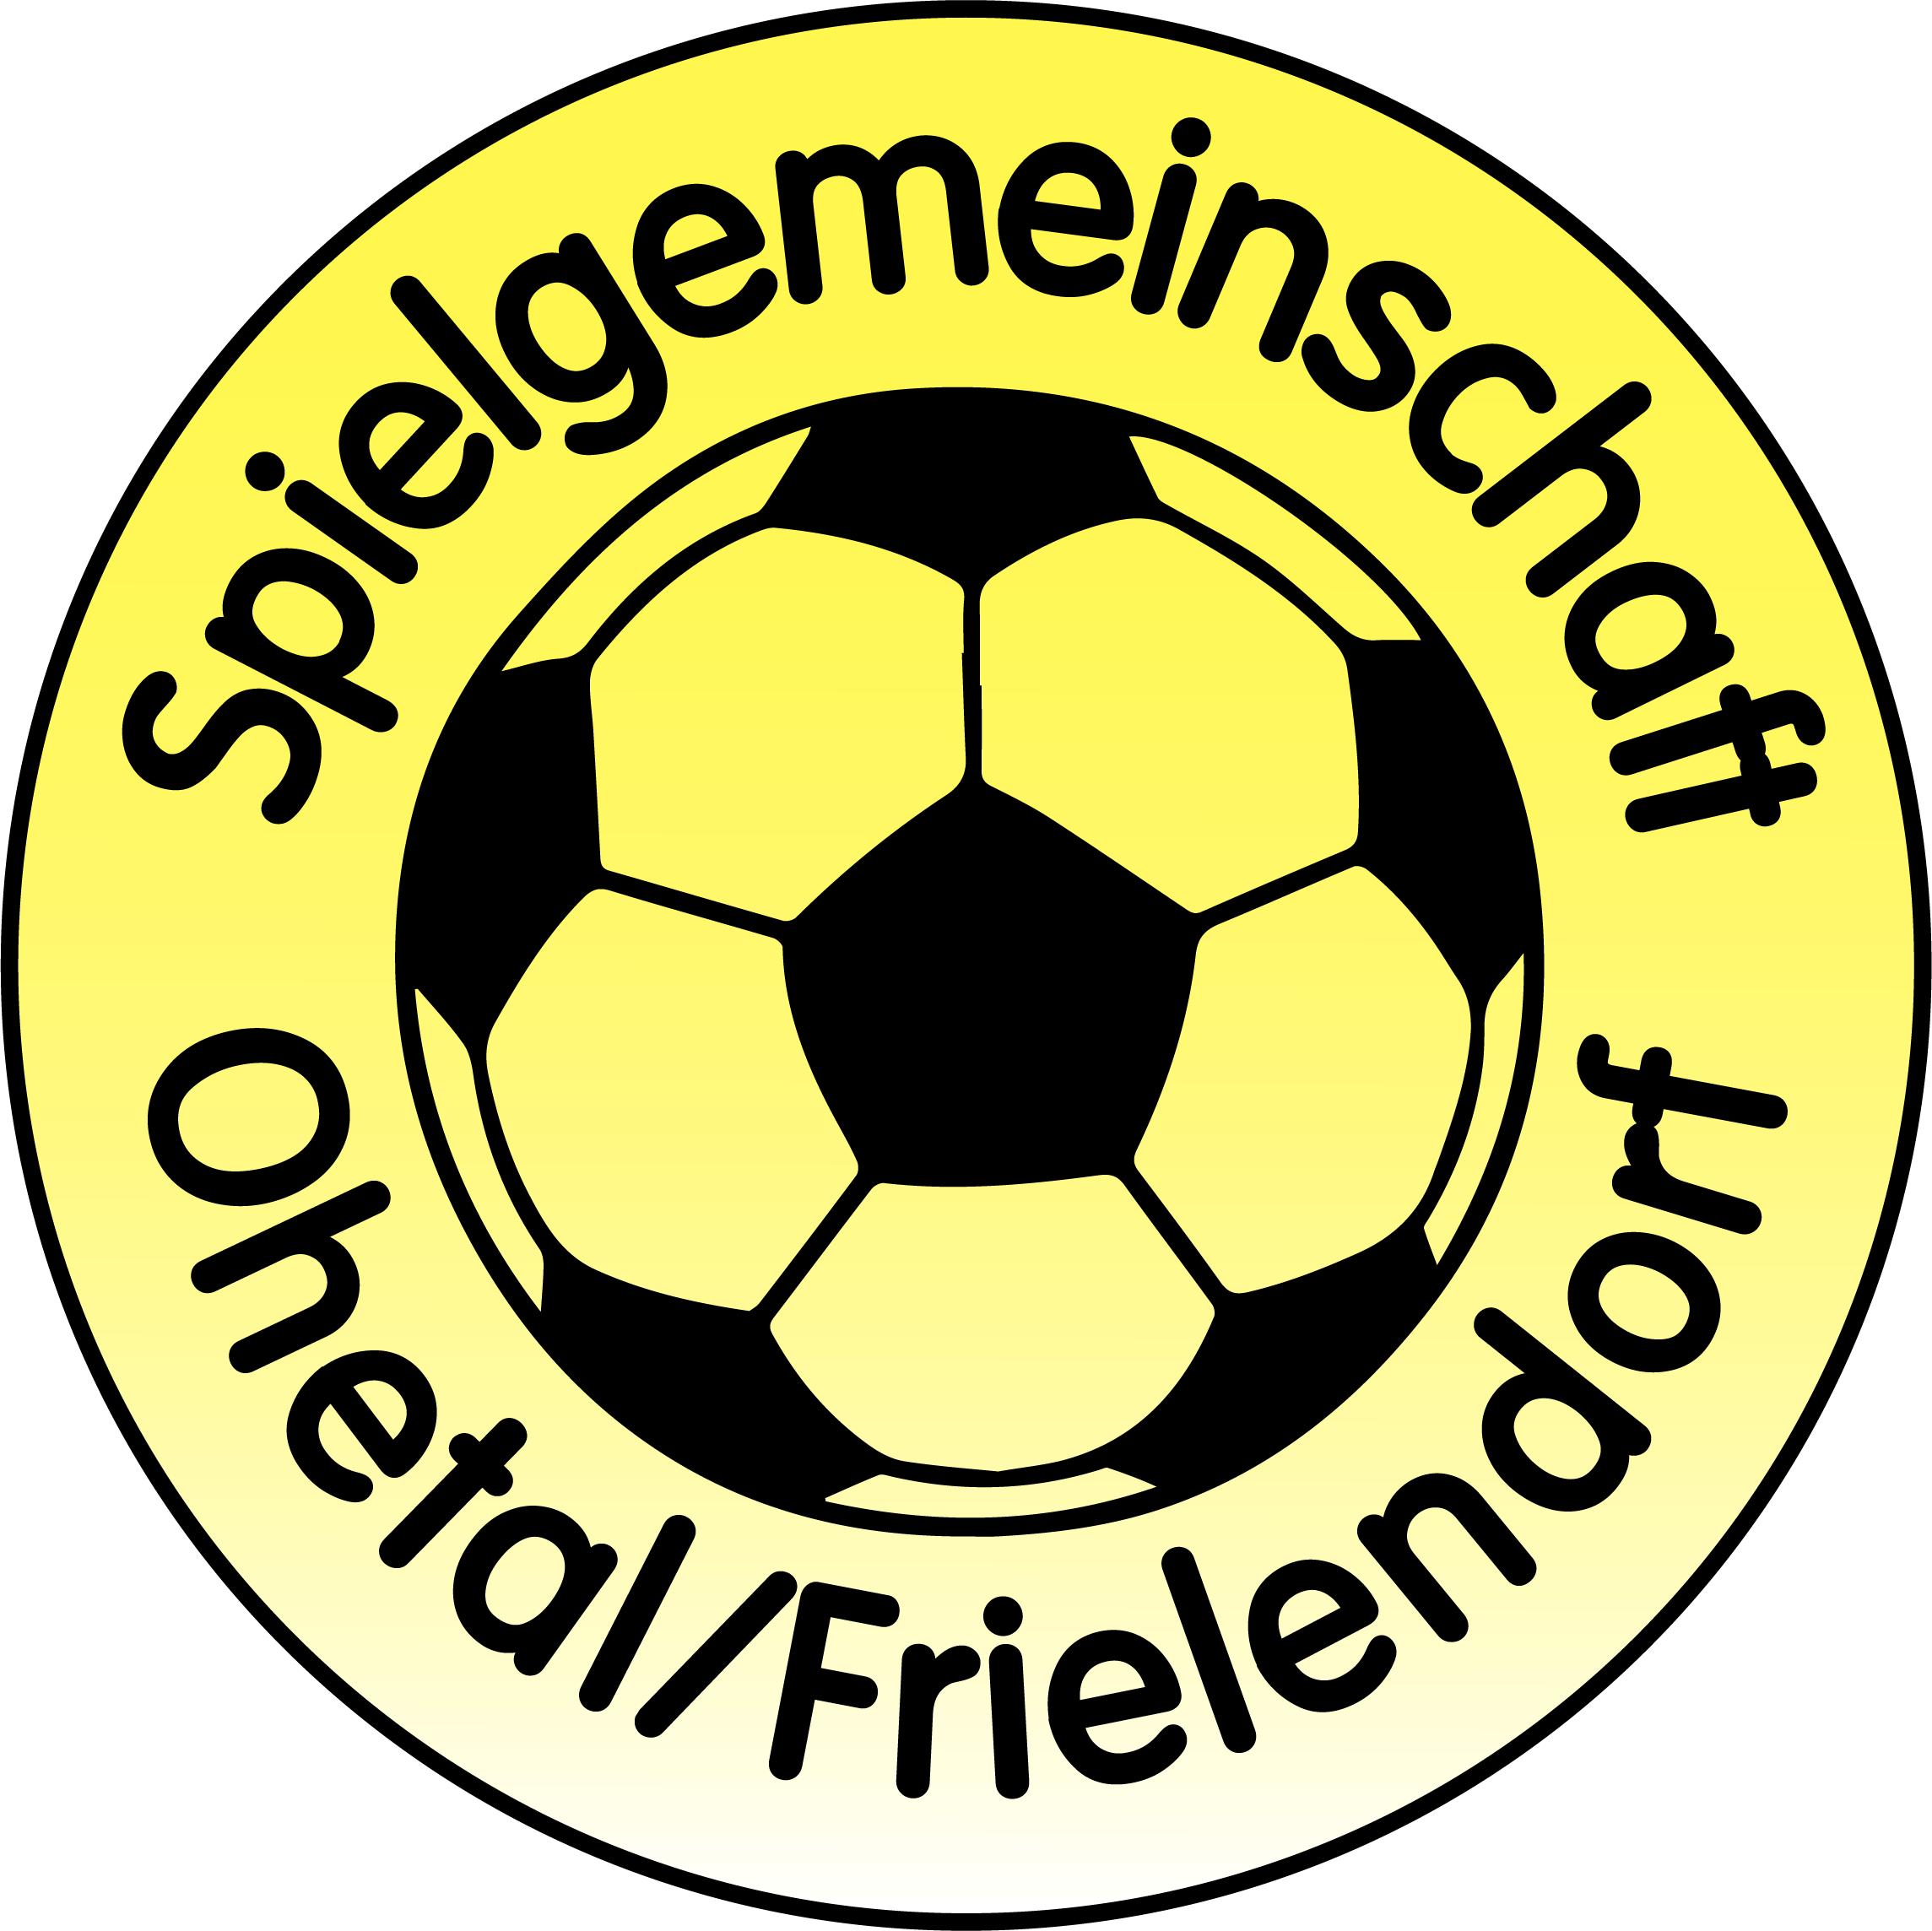 SG Ohetal/Frielendorf